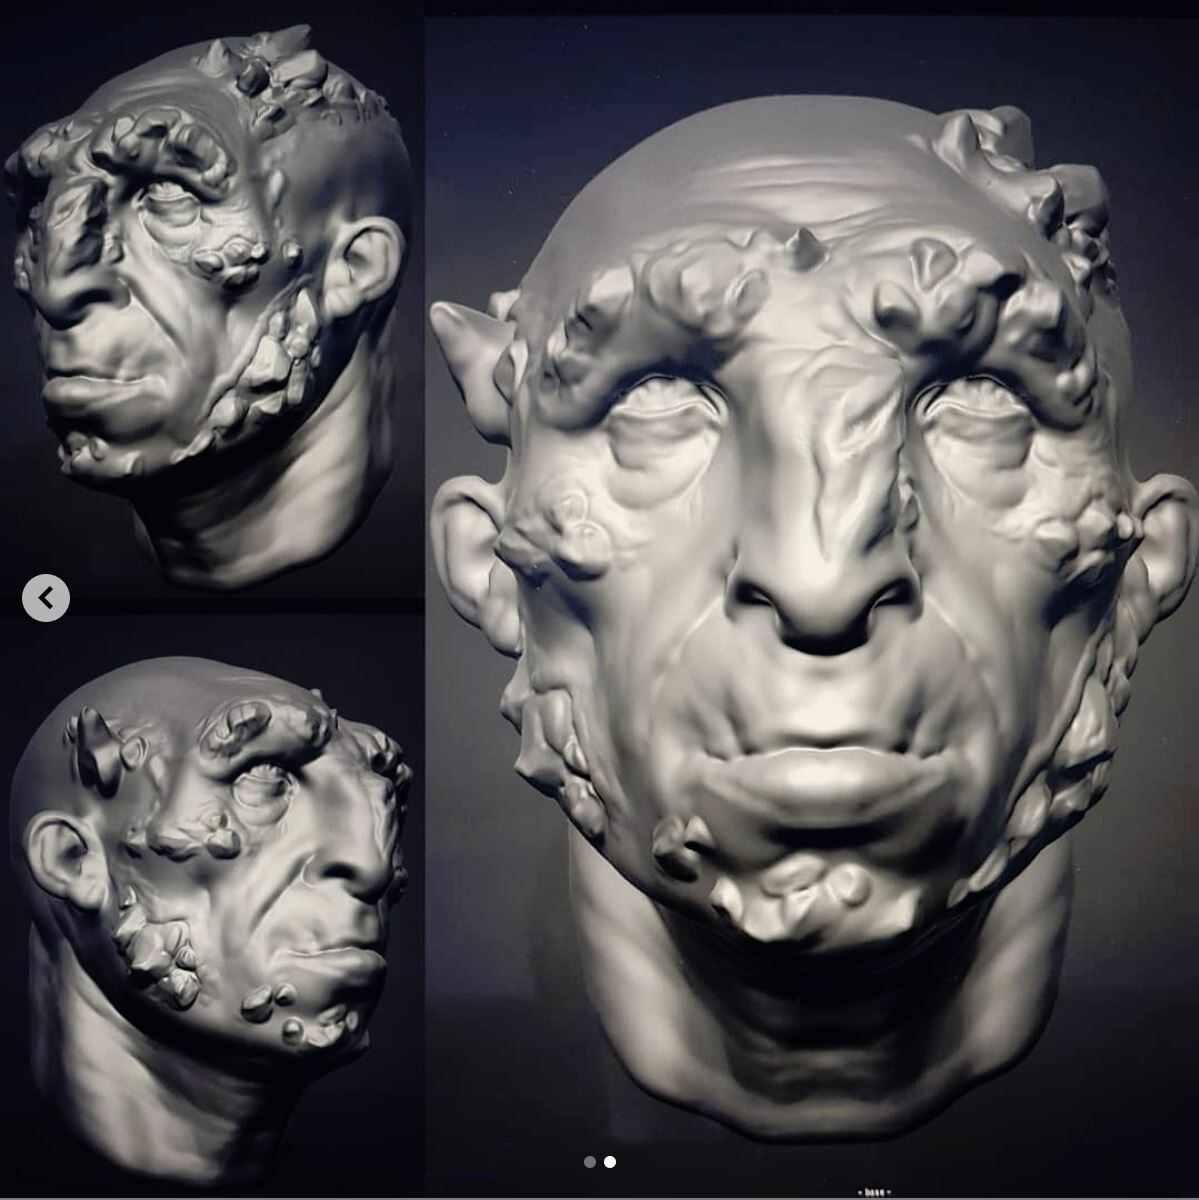 Timelapse of this dude, showing the sculpting process while in ForgerApp on my iPad.